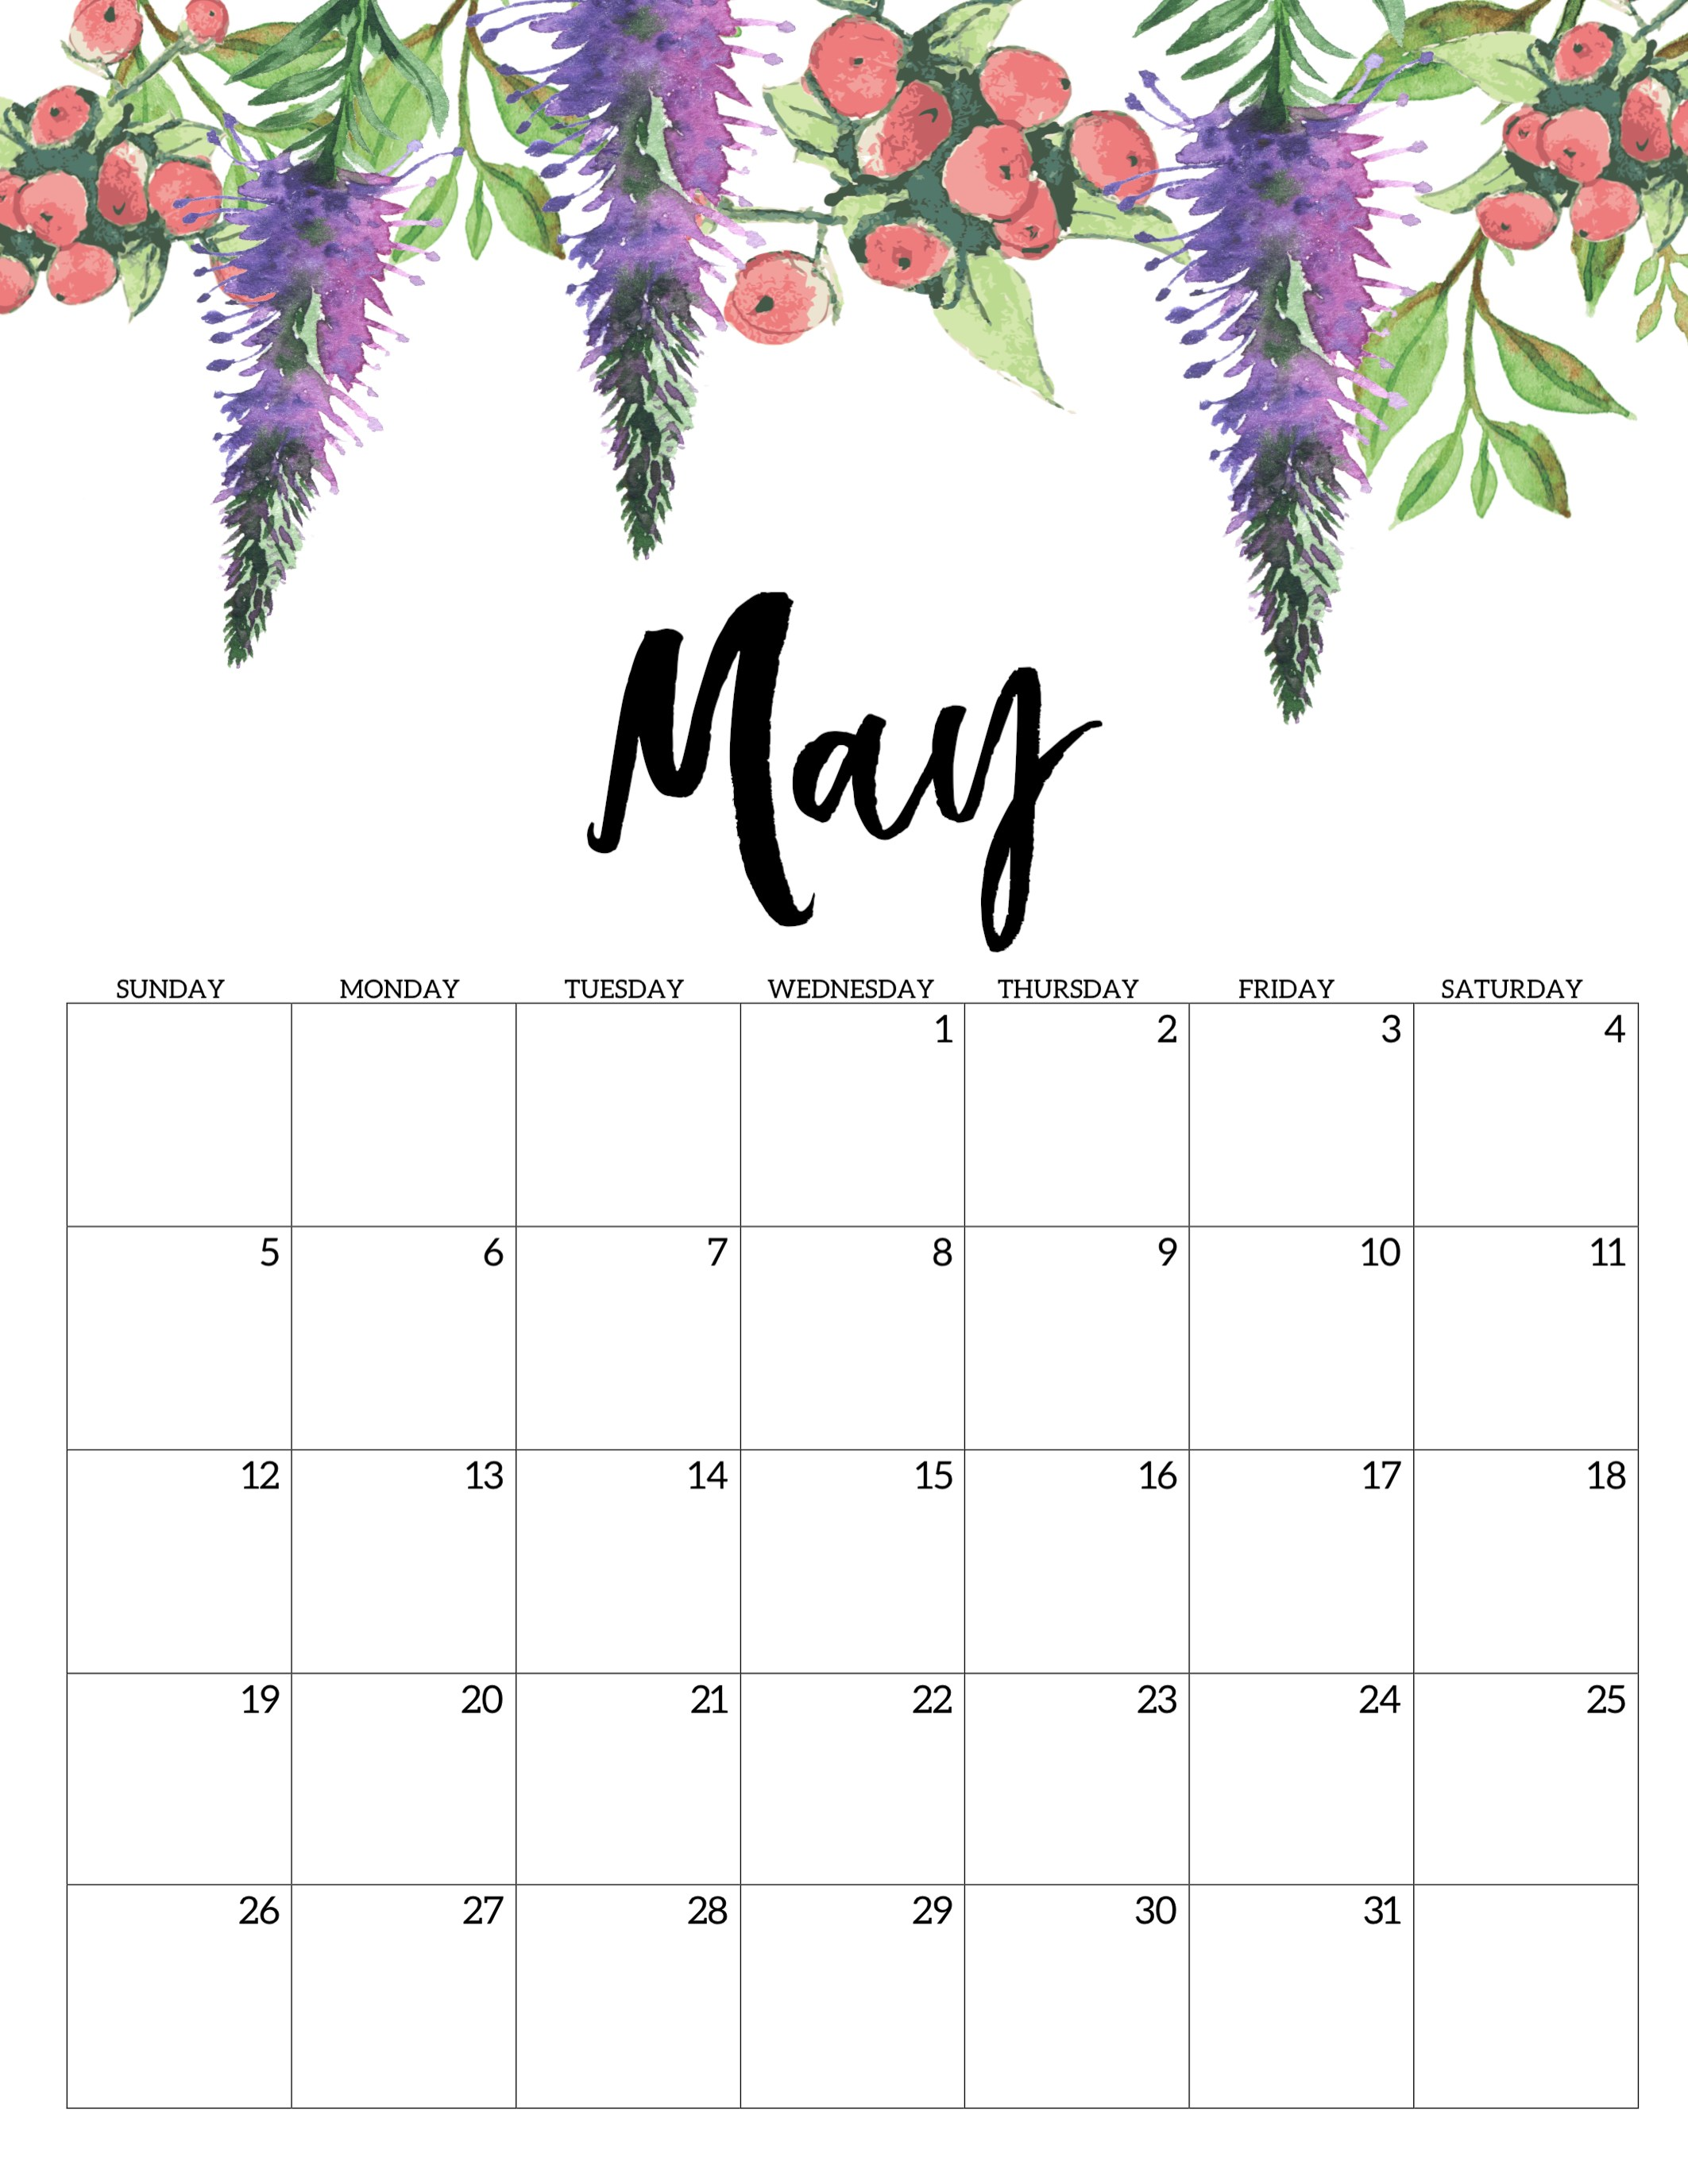 This Is Our Collection Of May Calendar 2019 Wallpaper - May 2019 Calendar Floral , HD Wallpaper & Backgrounds